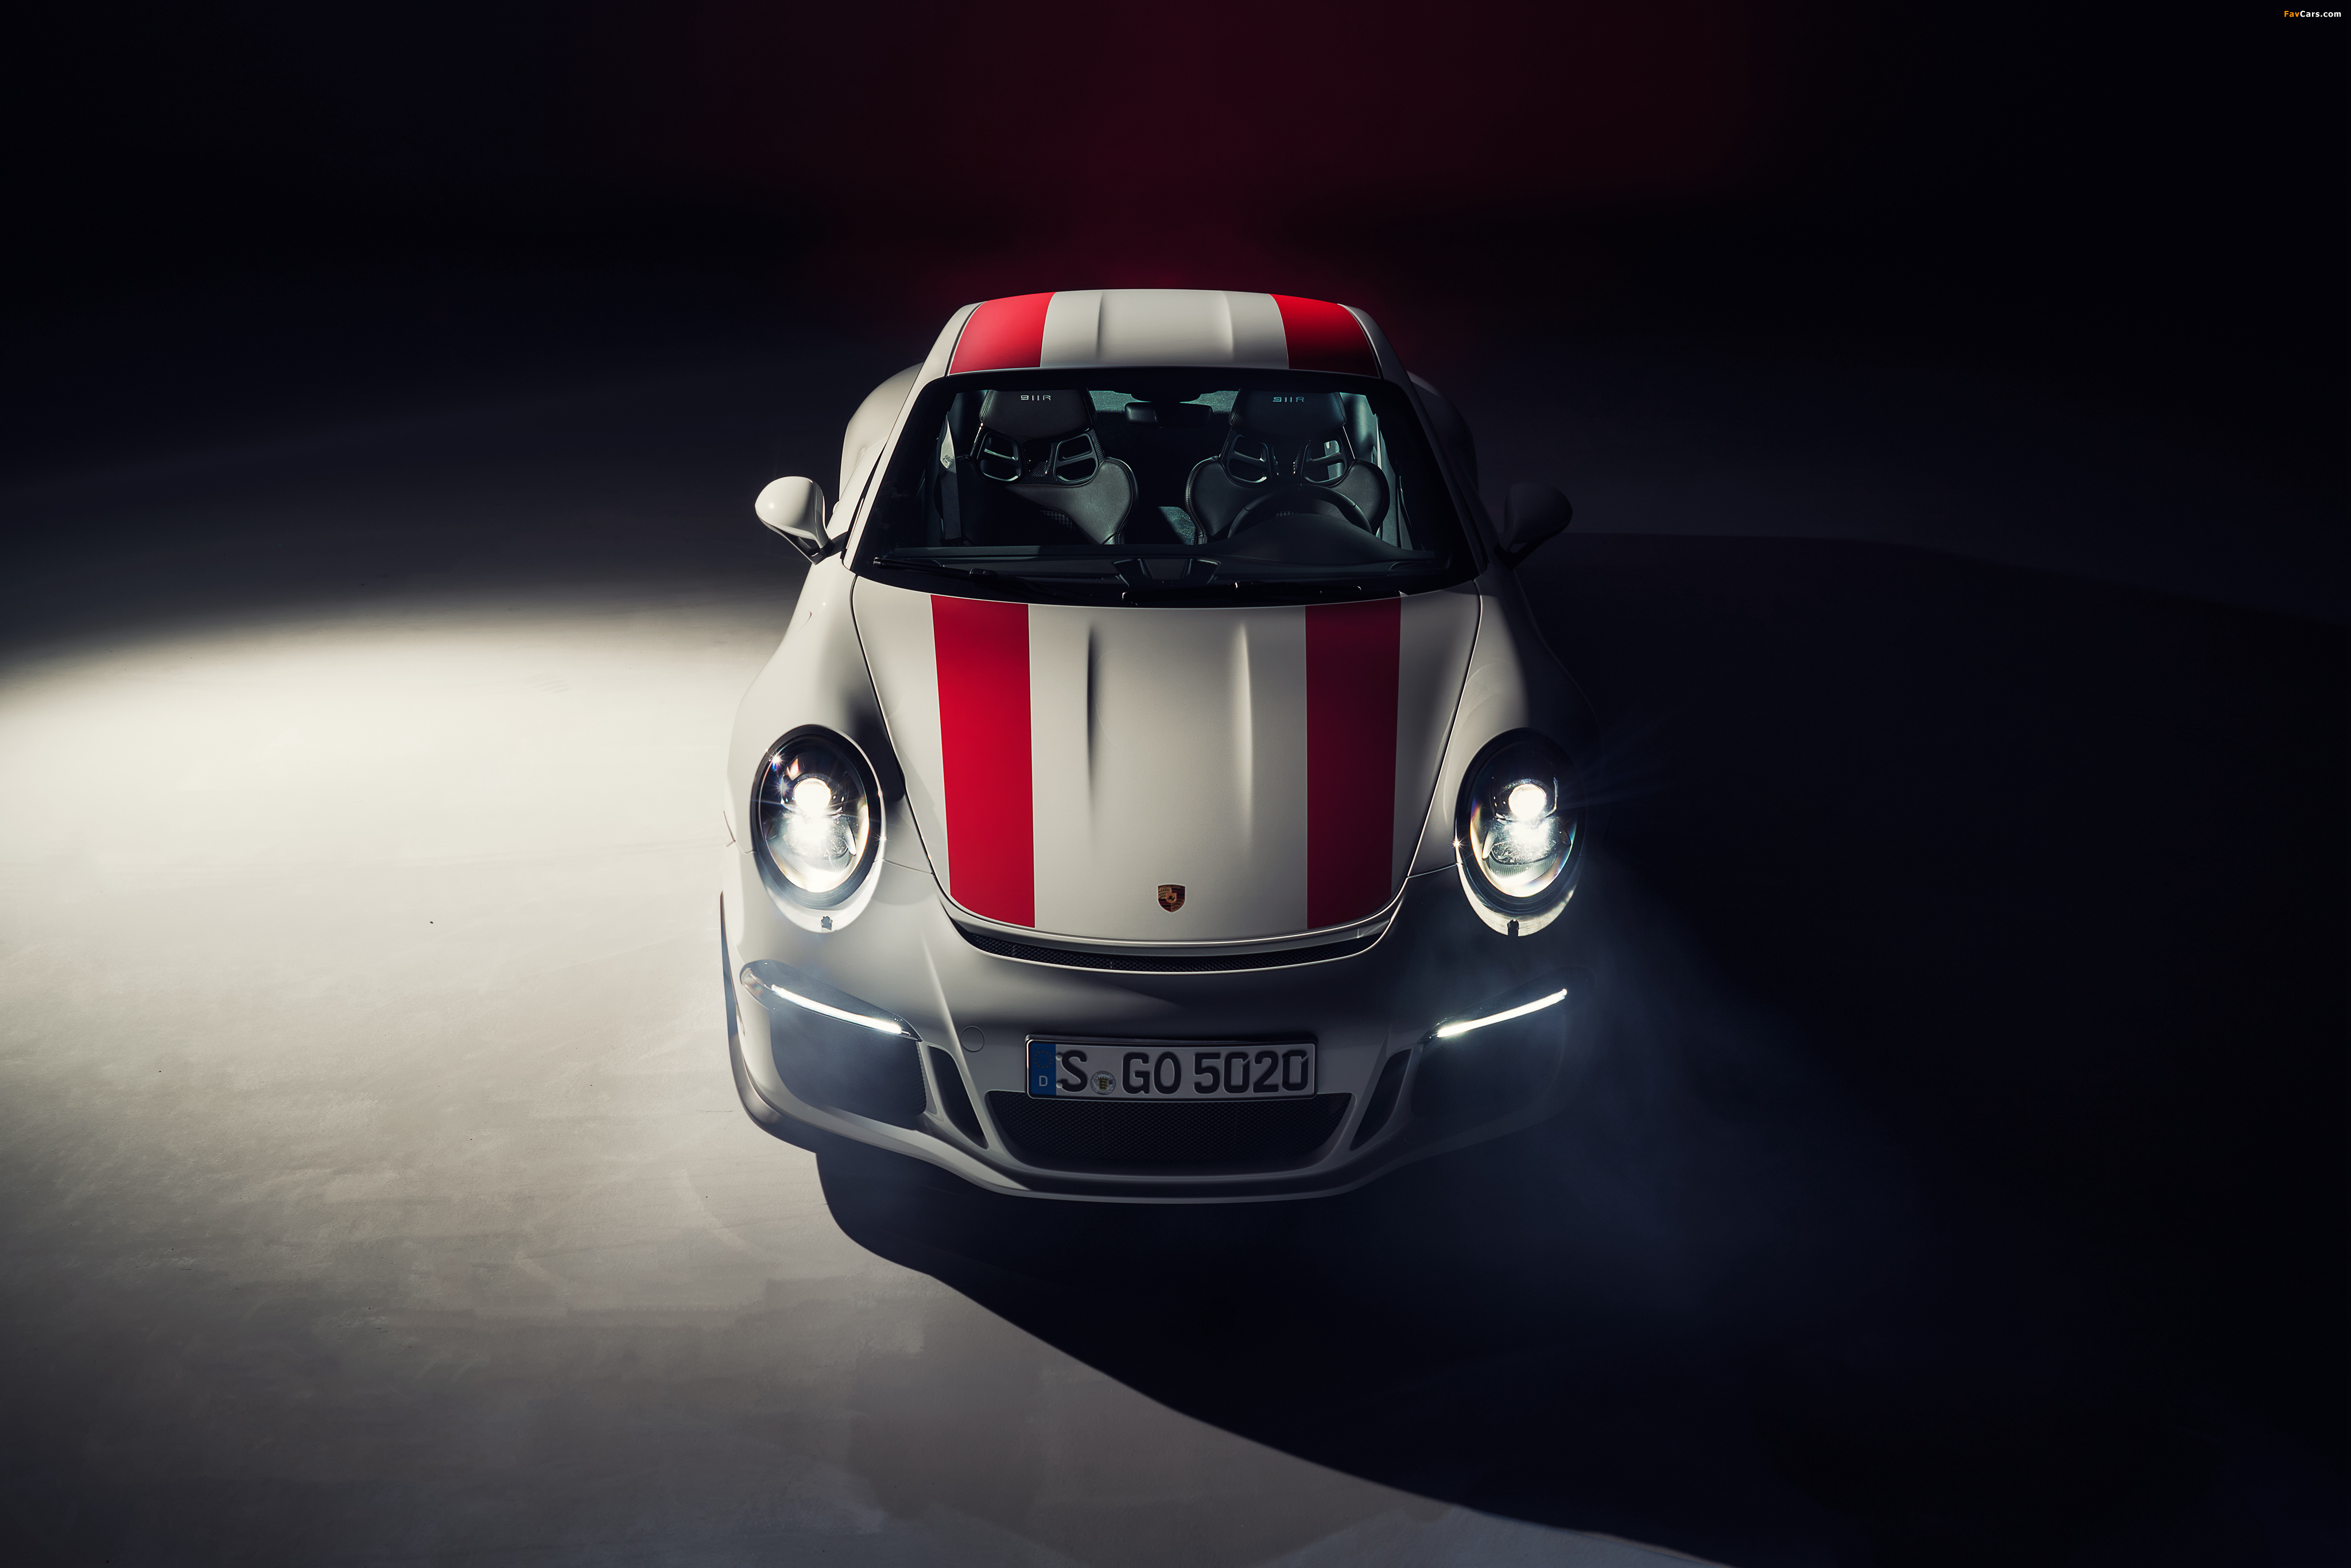 Porsche 911 R 991 2016 wallpapers 4096x2732 4096x2732